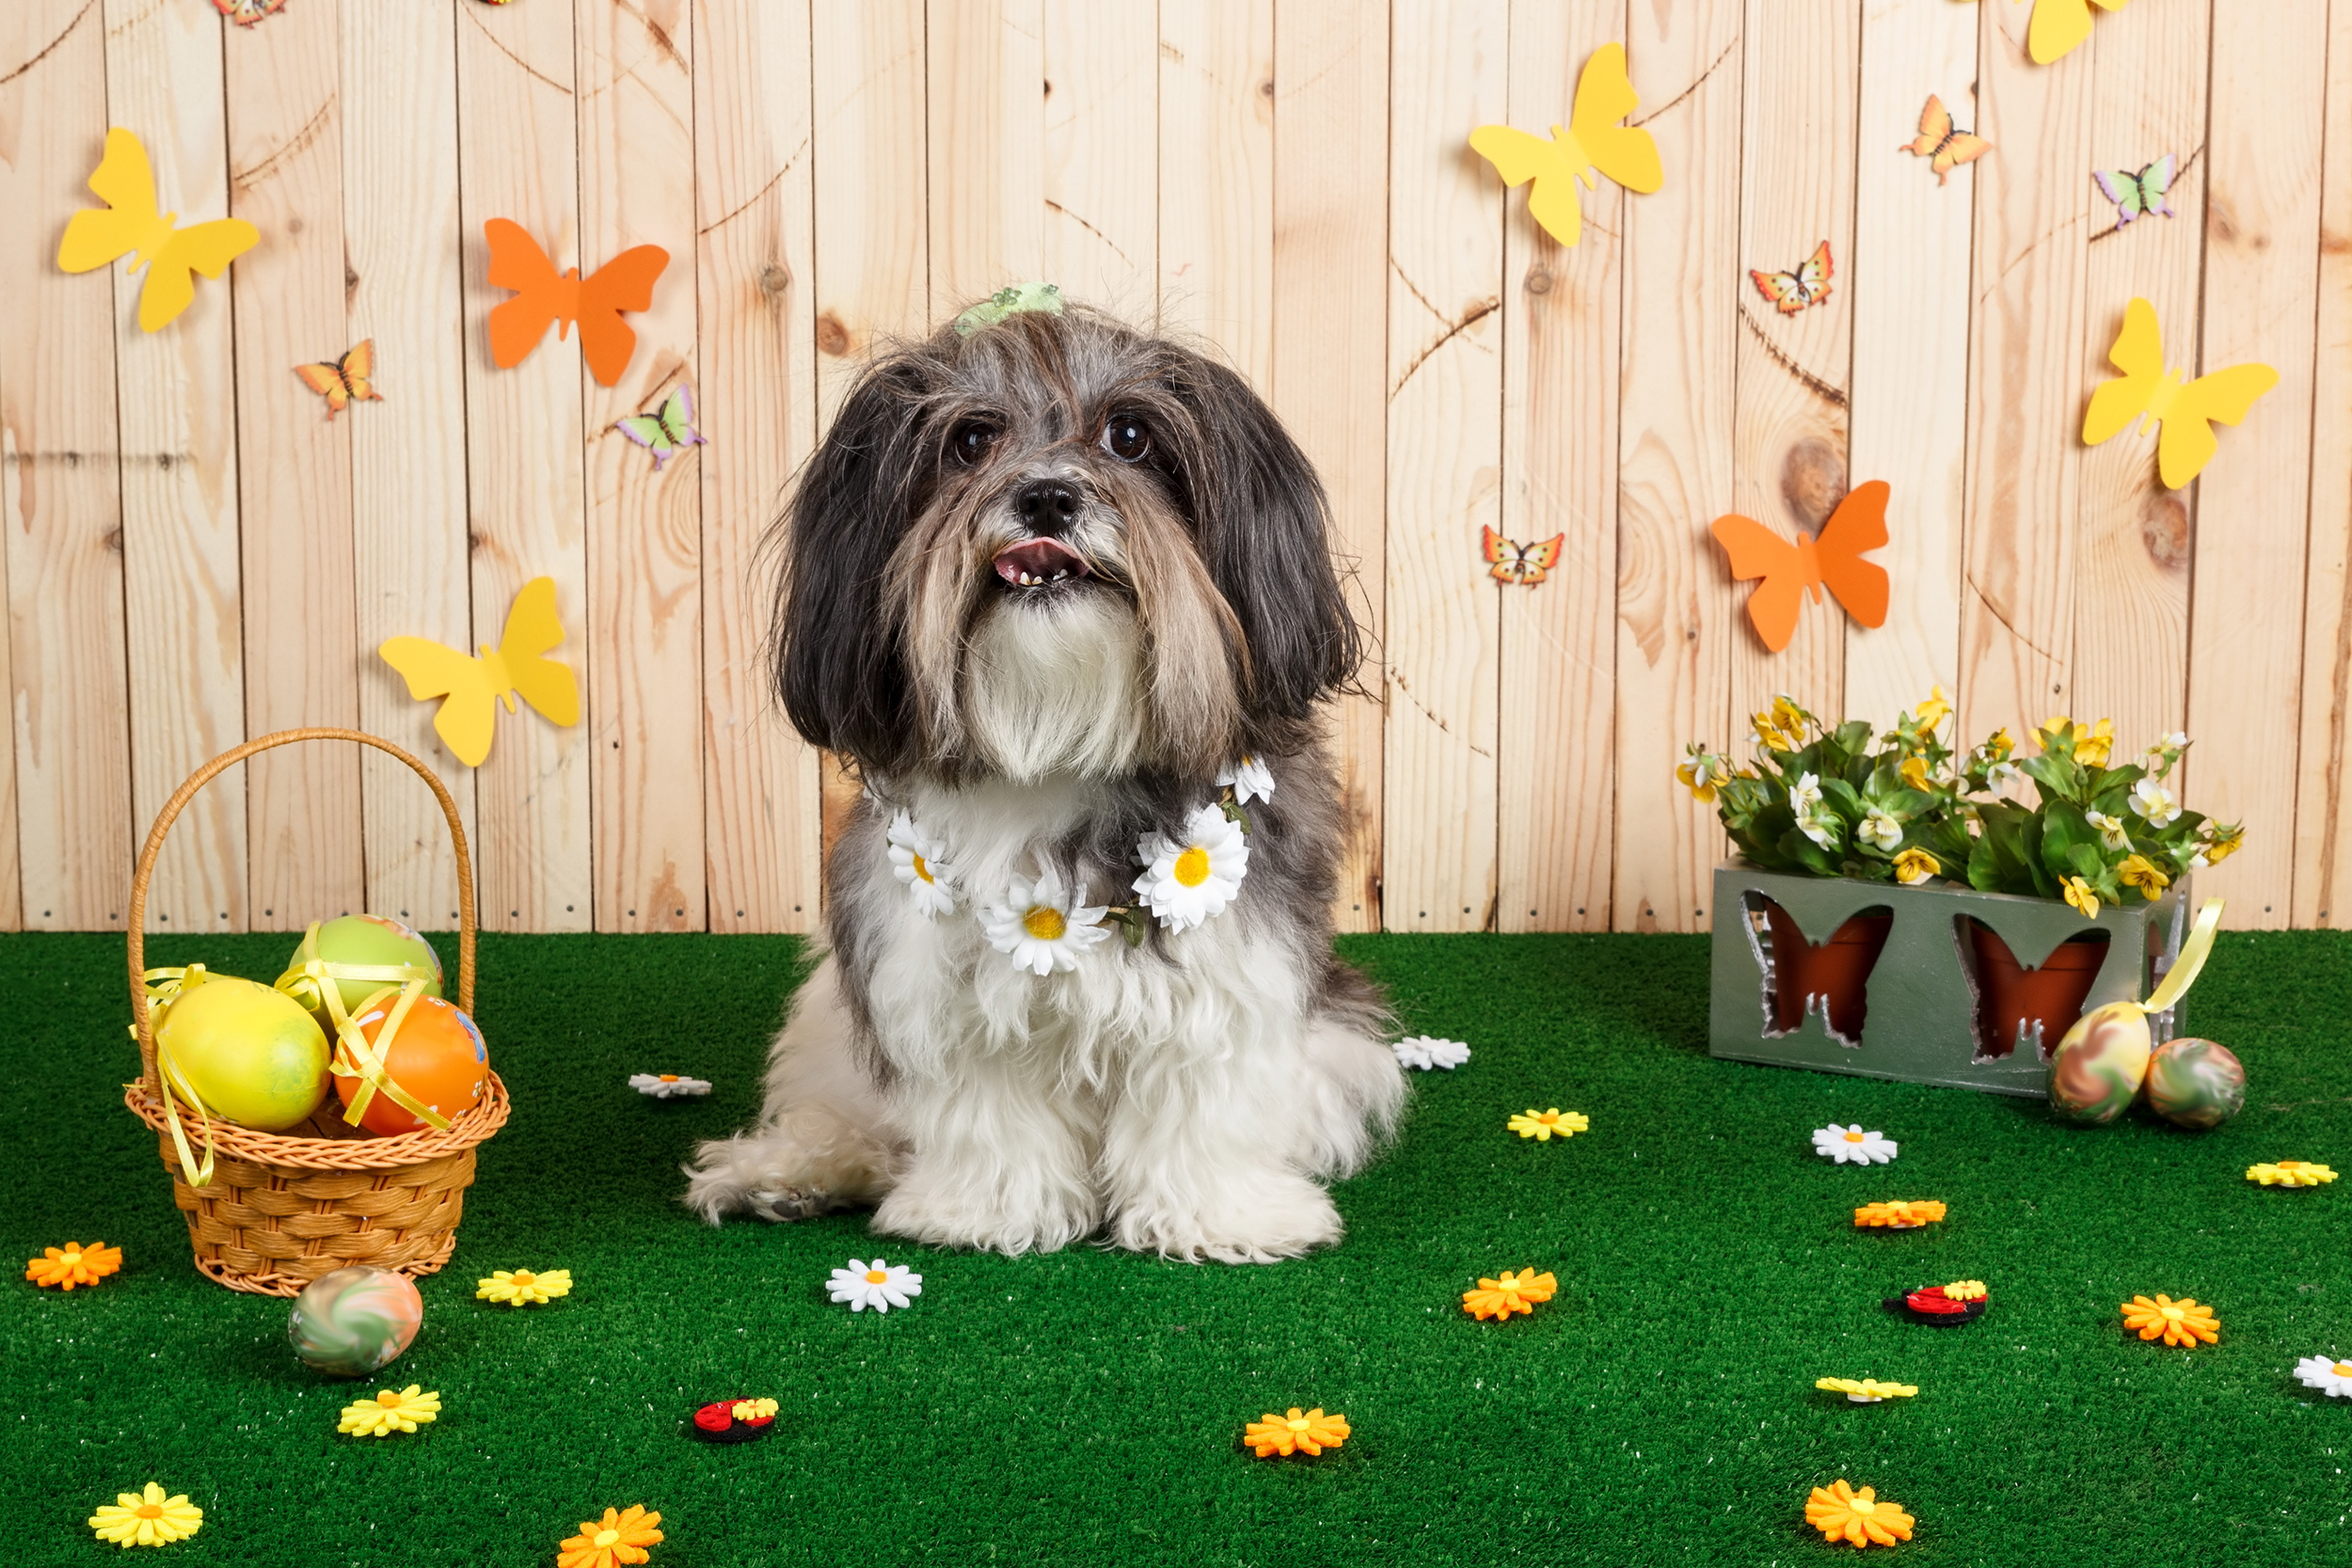 dog on artificial grass, small dog, cute dog